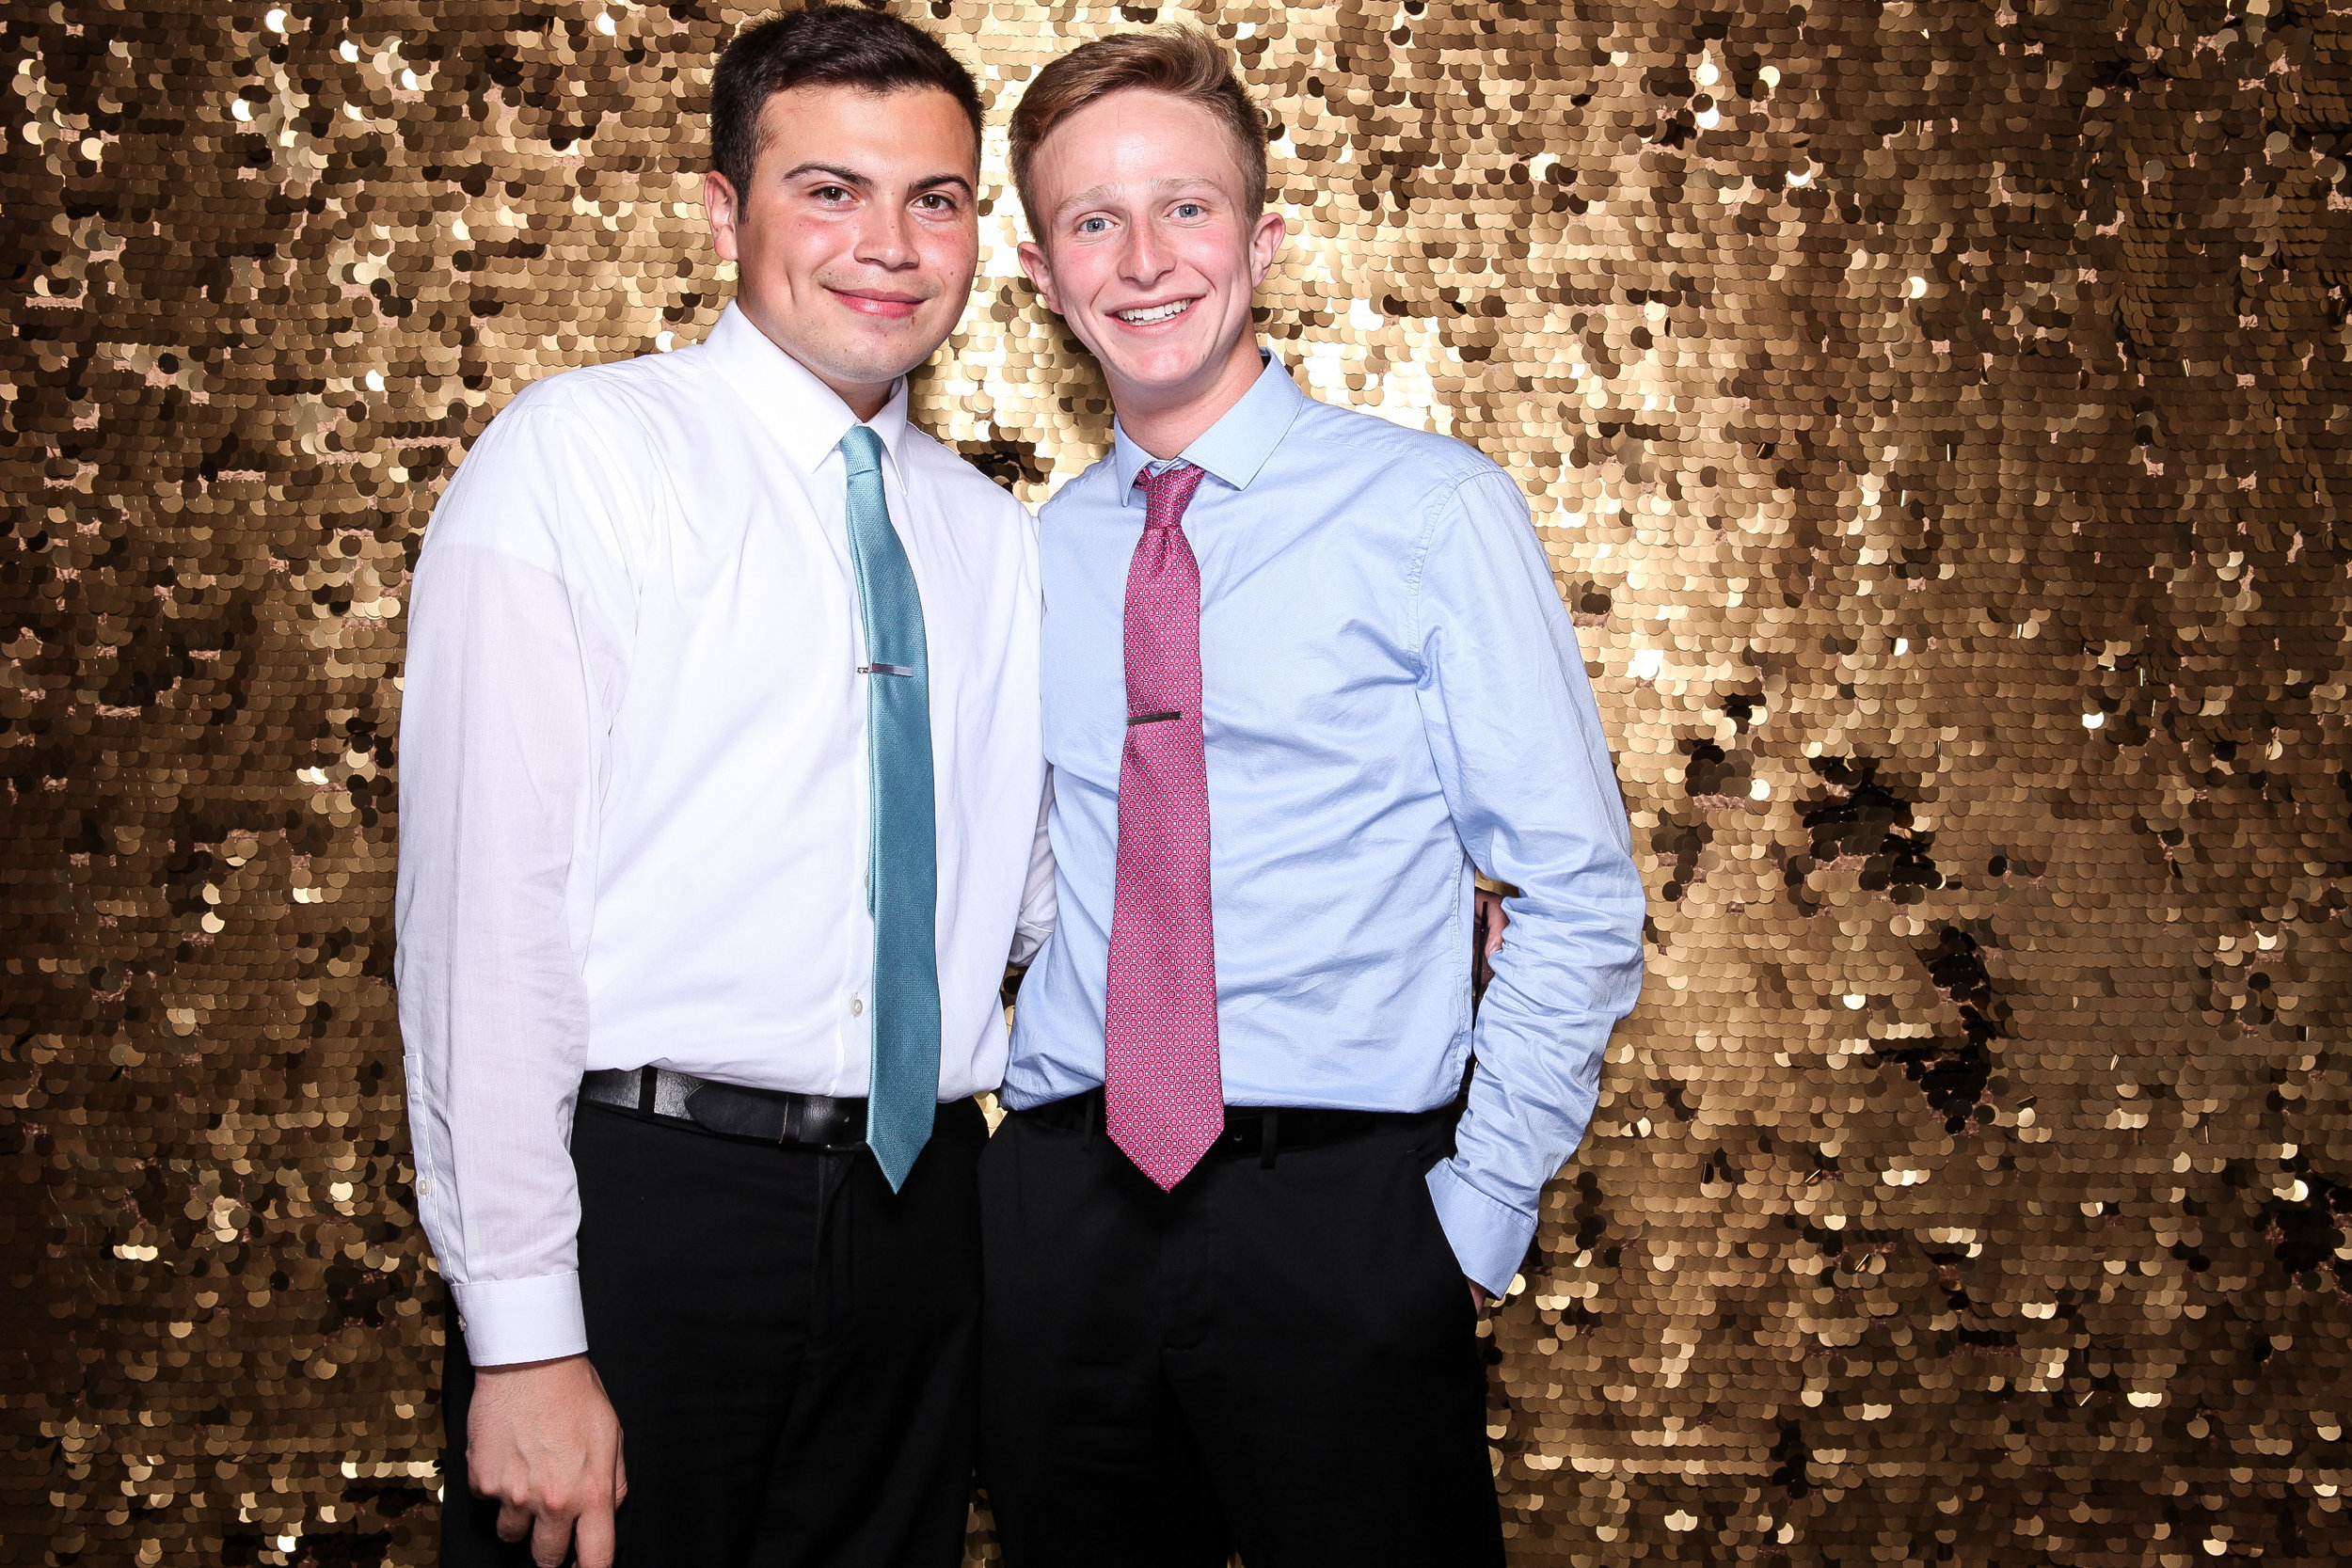 20190503_Adelphi_Senior_Formal-343.jpg